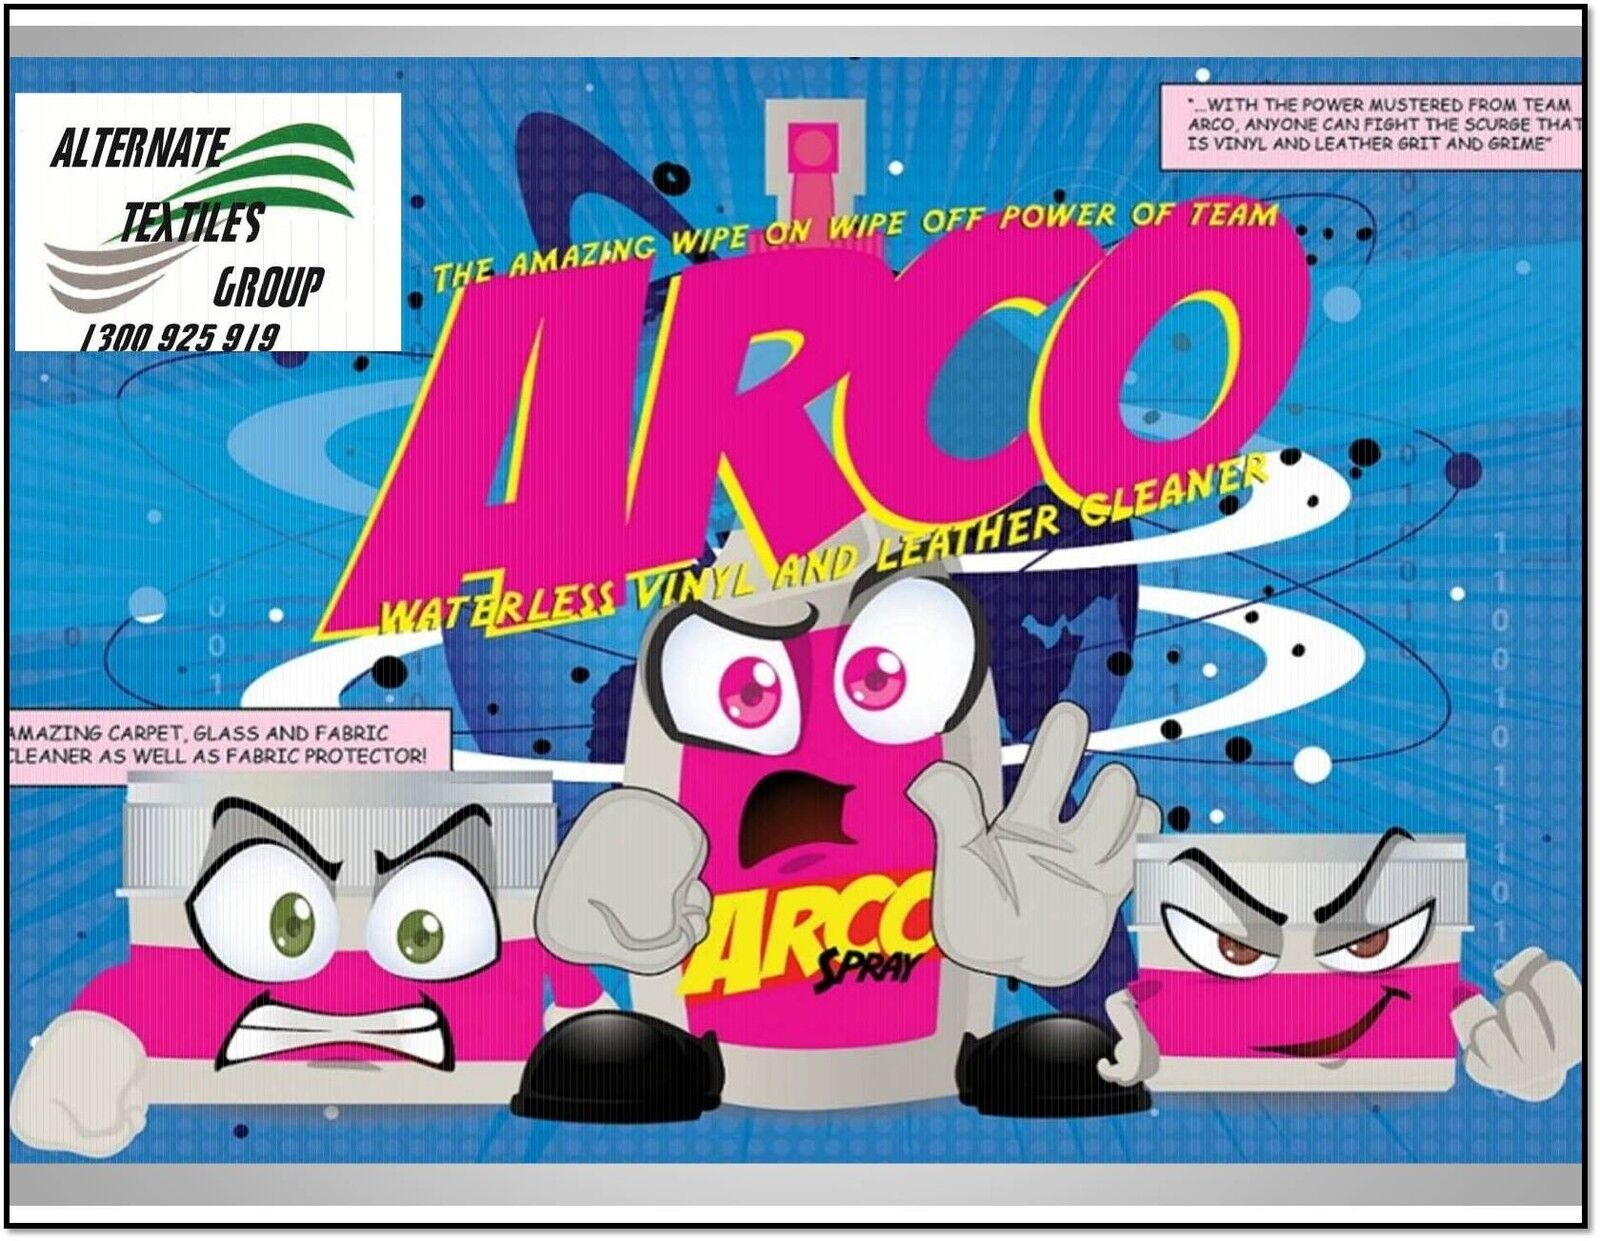 Arco Cleaning & Protective Solution